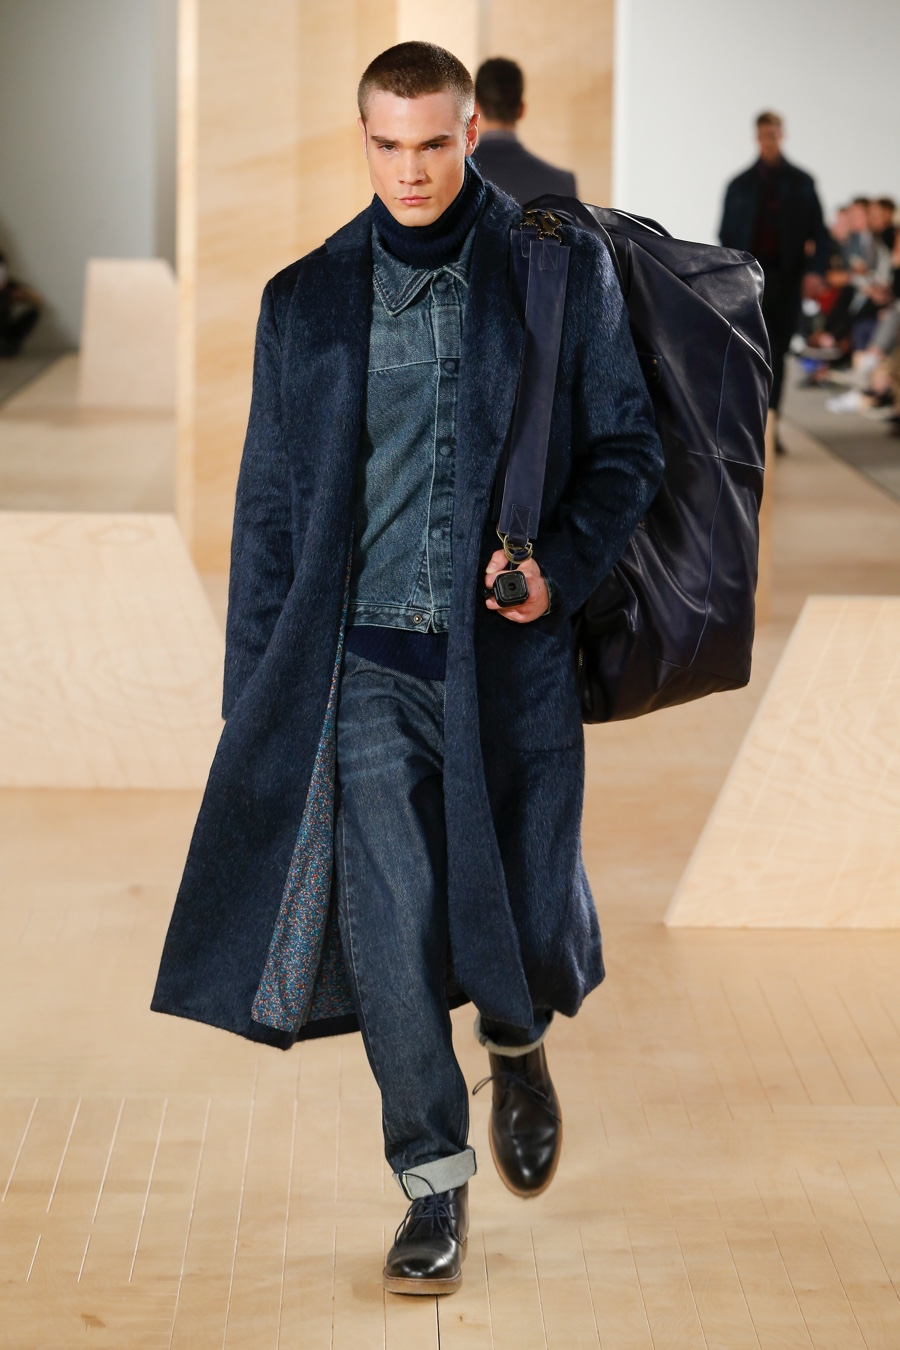 Perry Ellis Inspired by Landscapes, Revisits Classics for Fall Collection